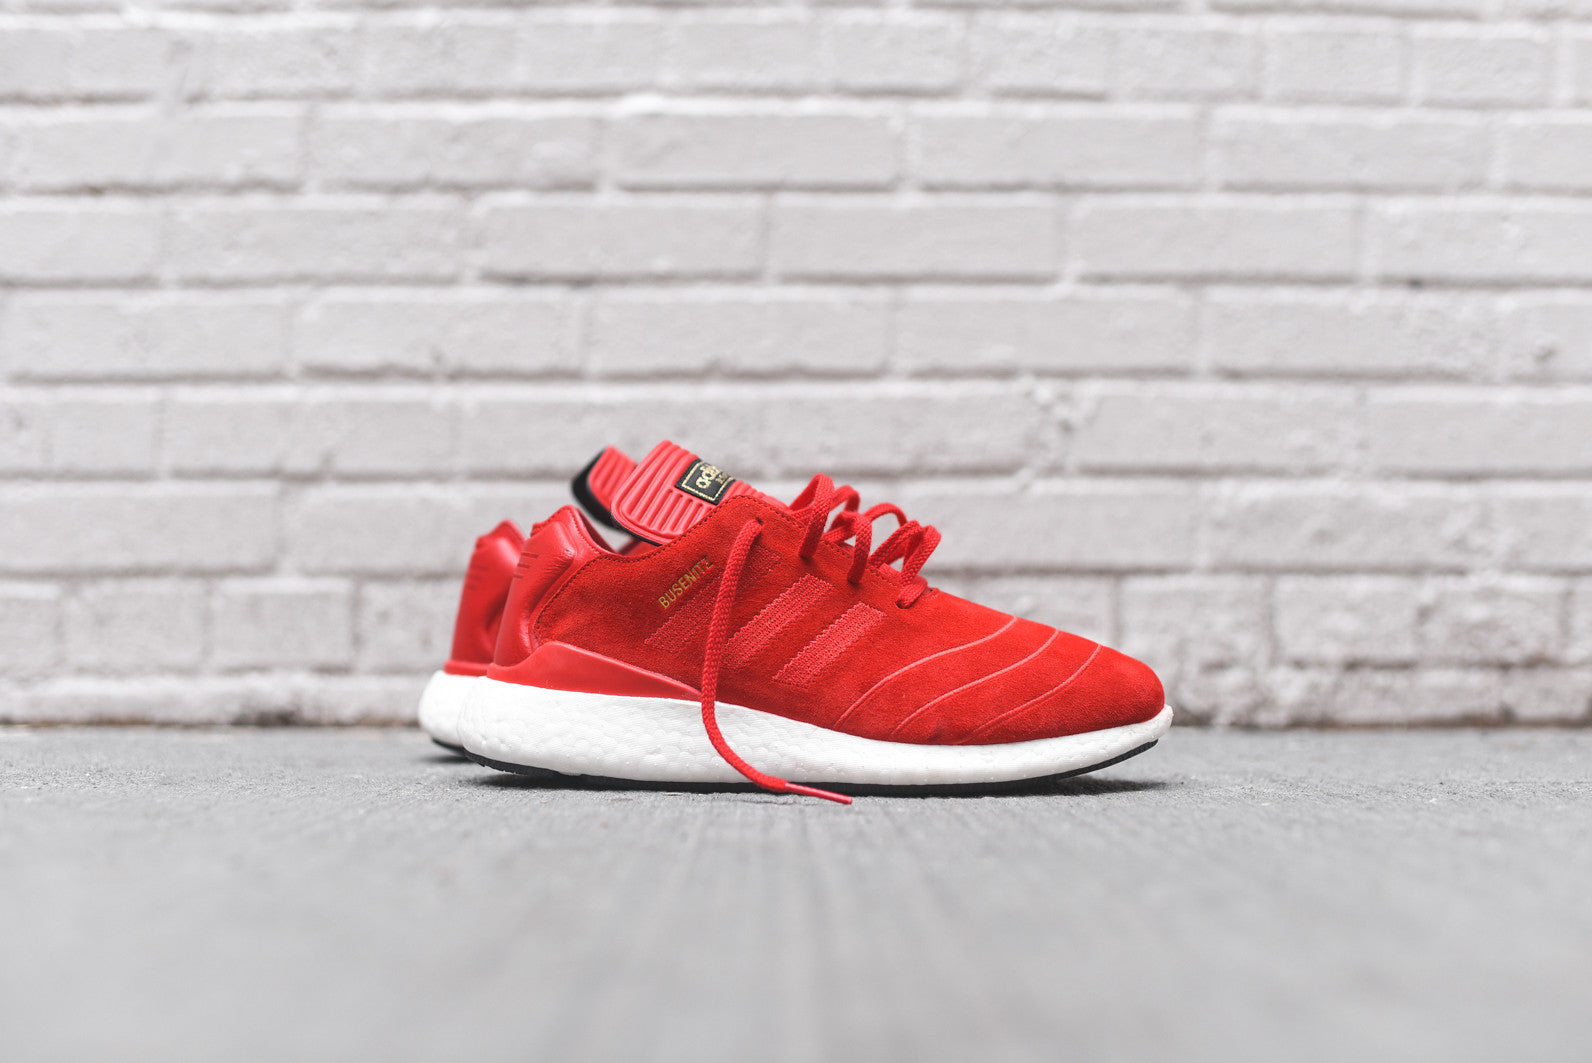 adidas Busenitz Pure Boost - Scarlet Red